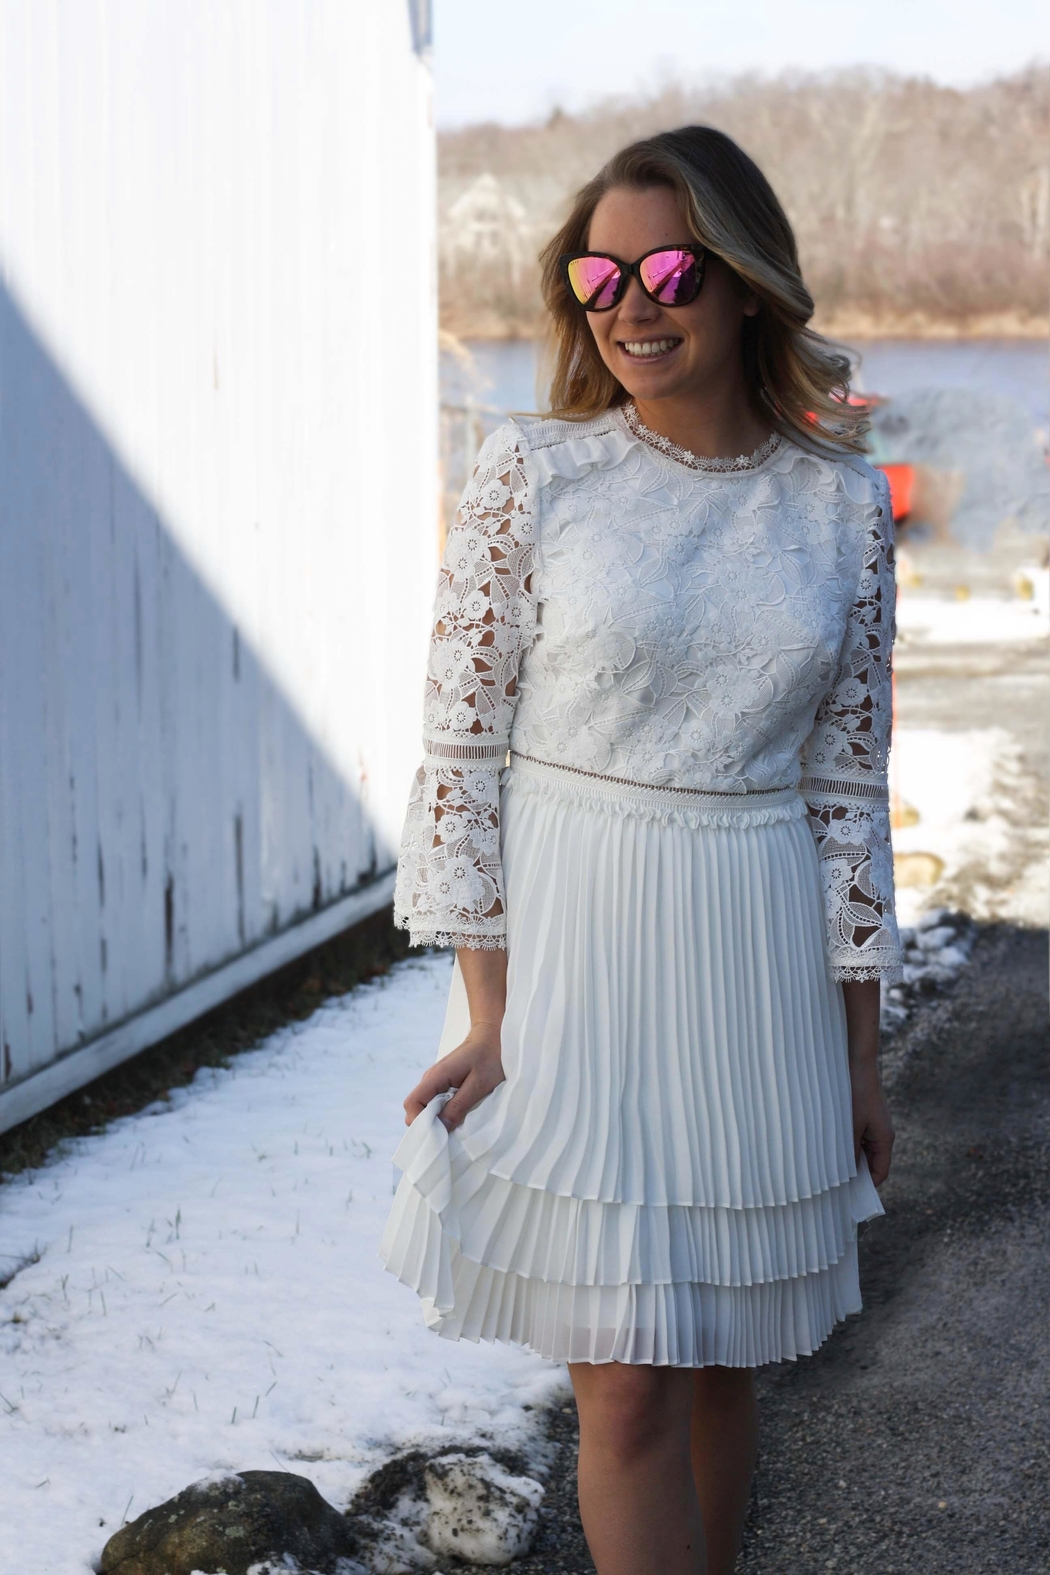 Ted Baker White Lace Dress From Wallingford By The Dressing Room